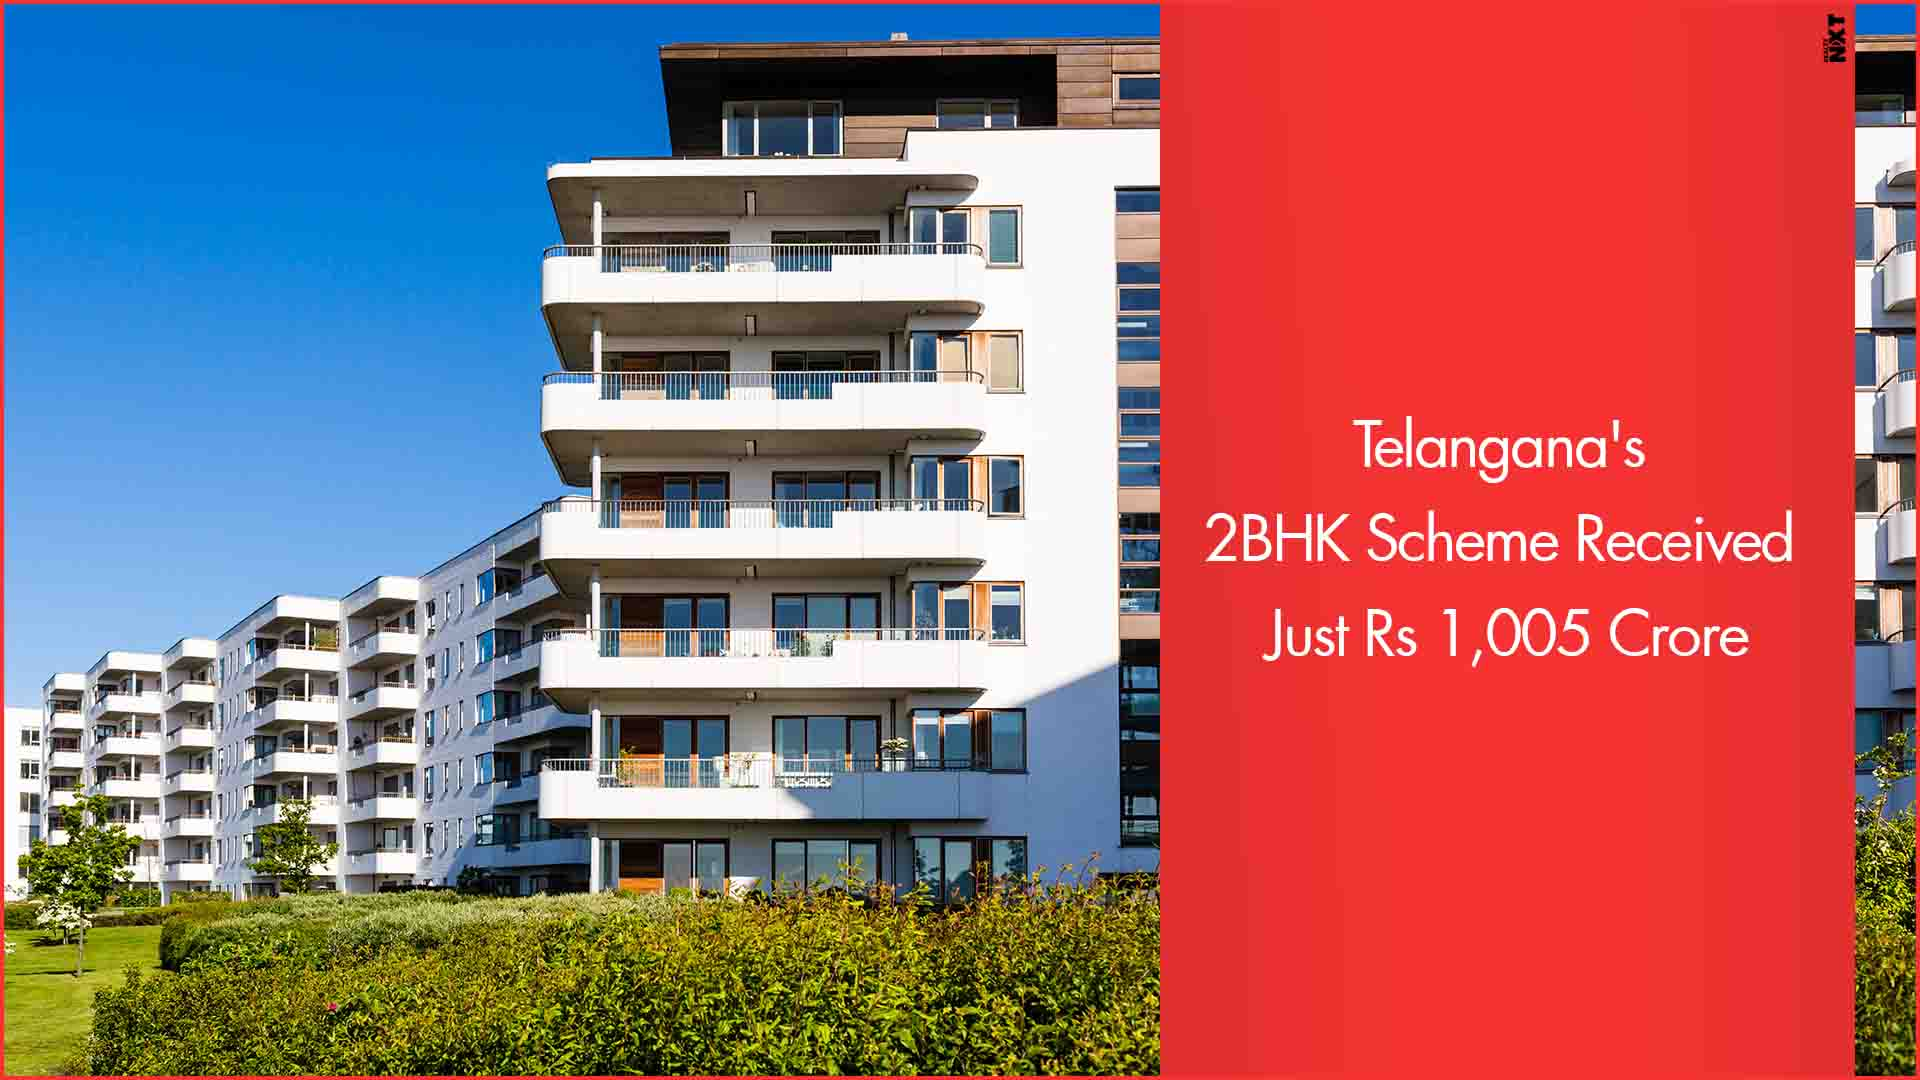 Telangana's 2 BHK Scheme Battling with Fund Crisis